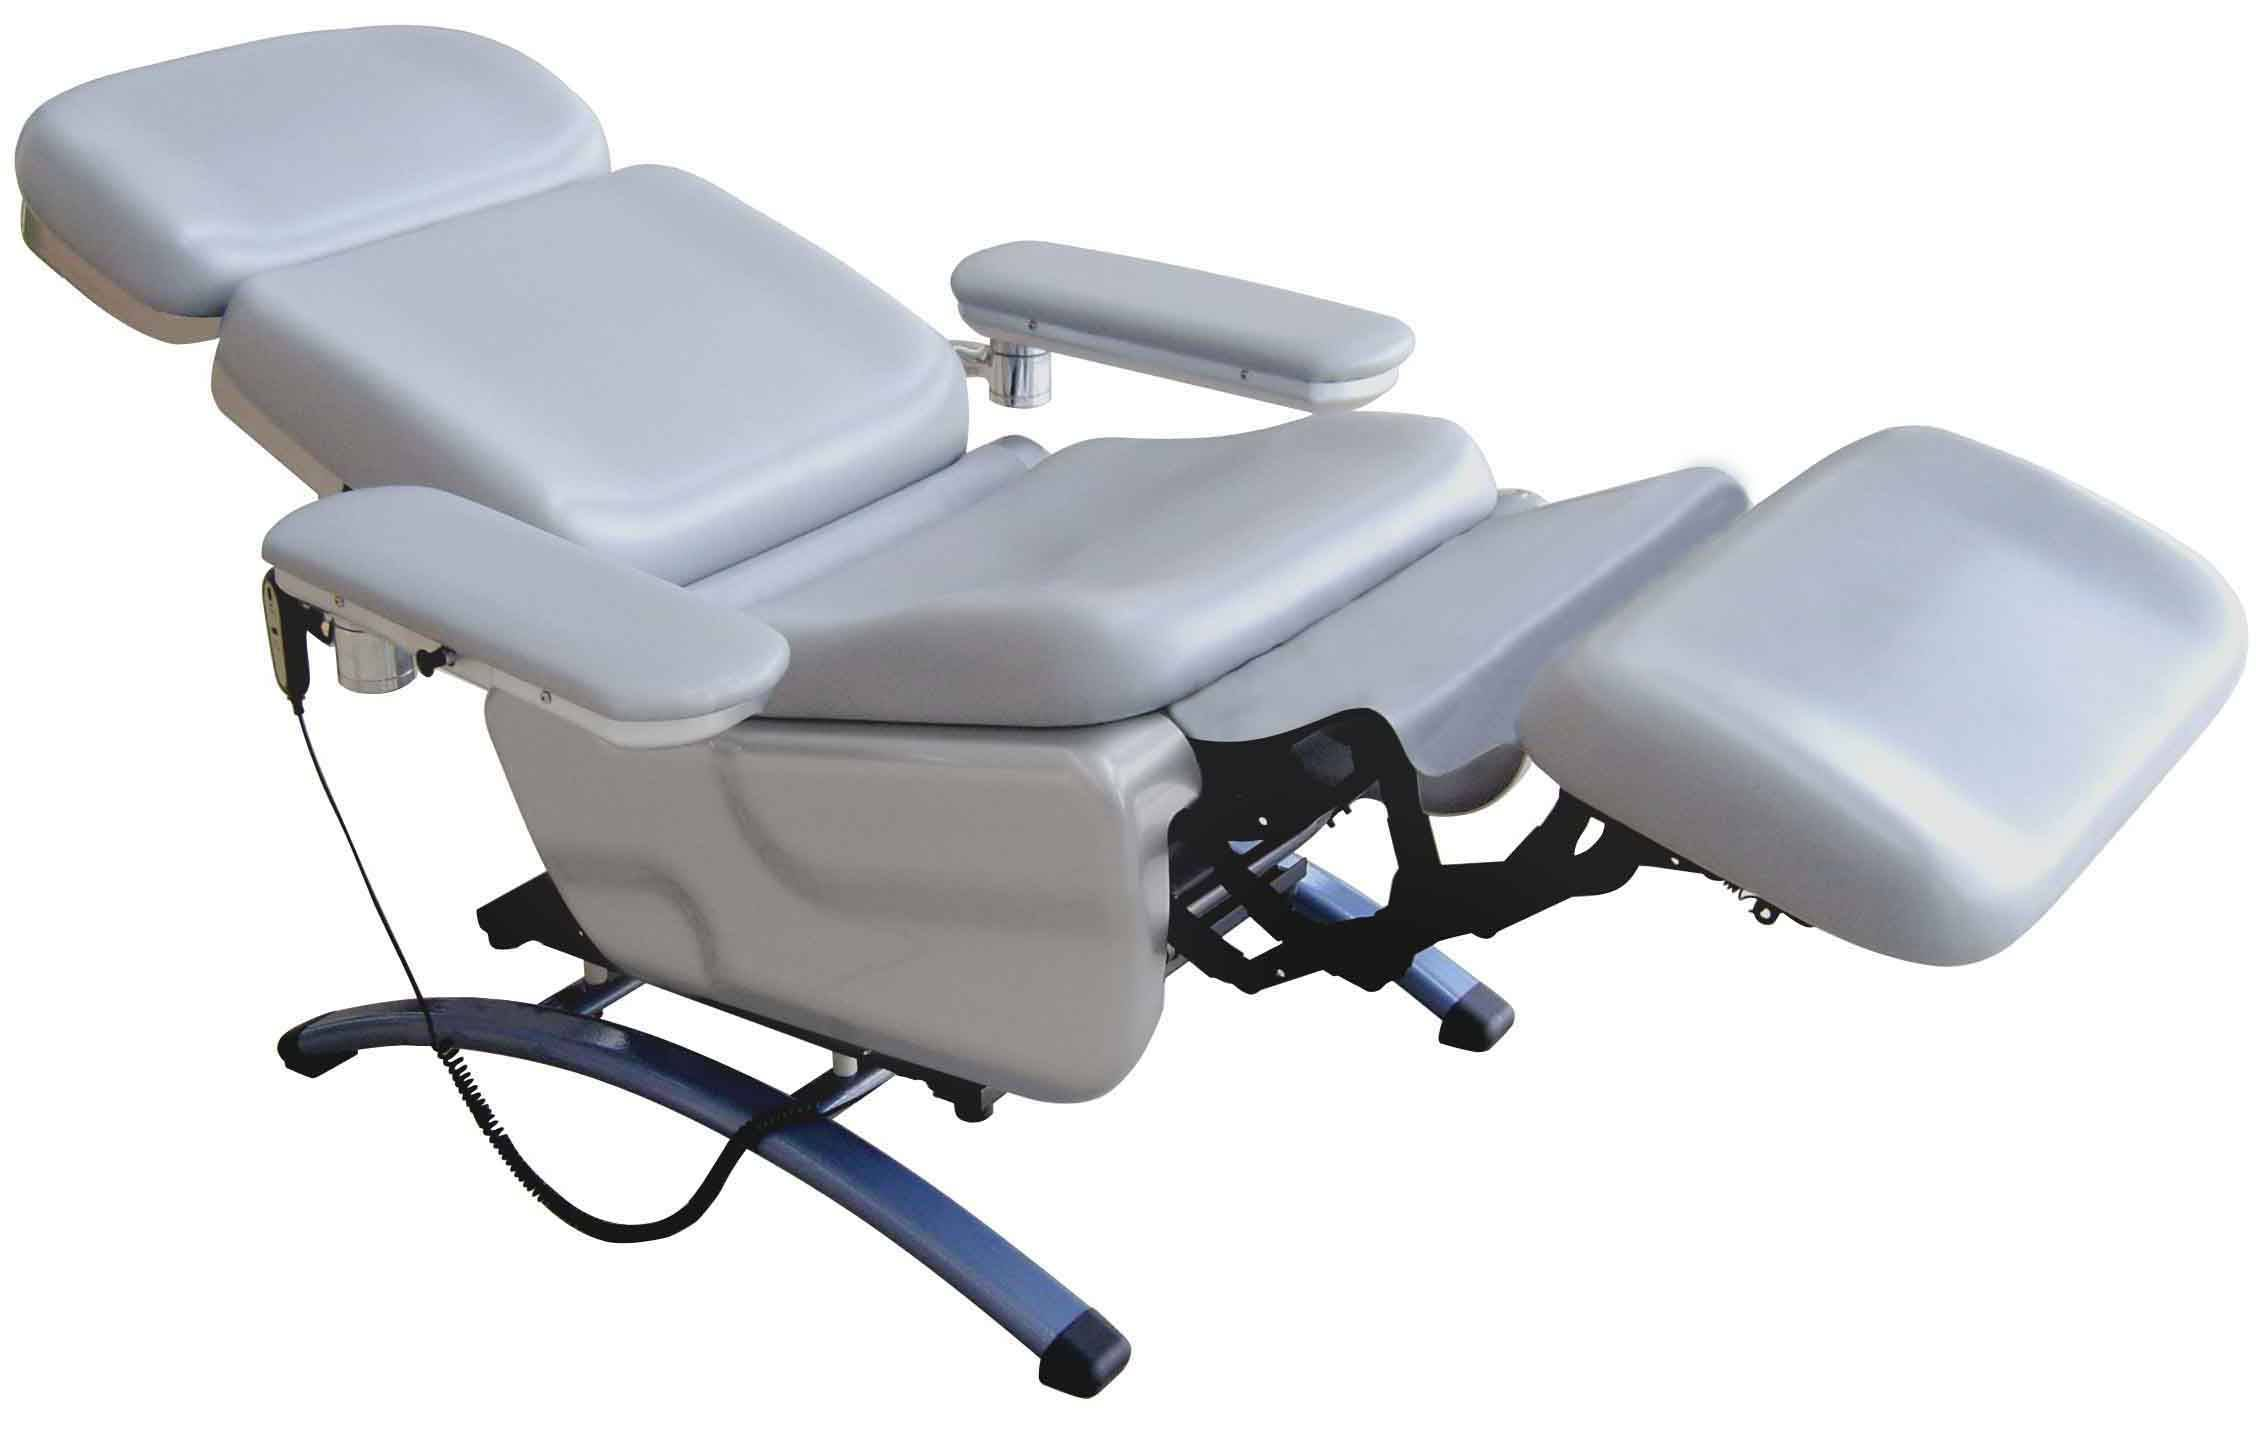 Global Medical Blood Donor Chairs Market Growth Factors, Business  Developments, Segmentation and Technologies 2020-2025 – Galus Australis